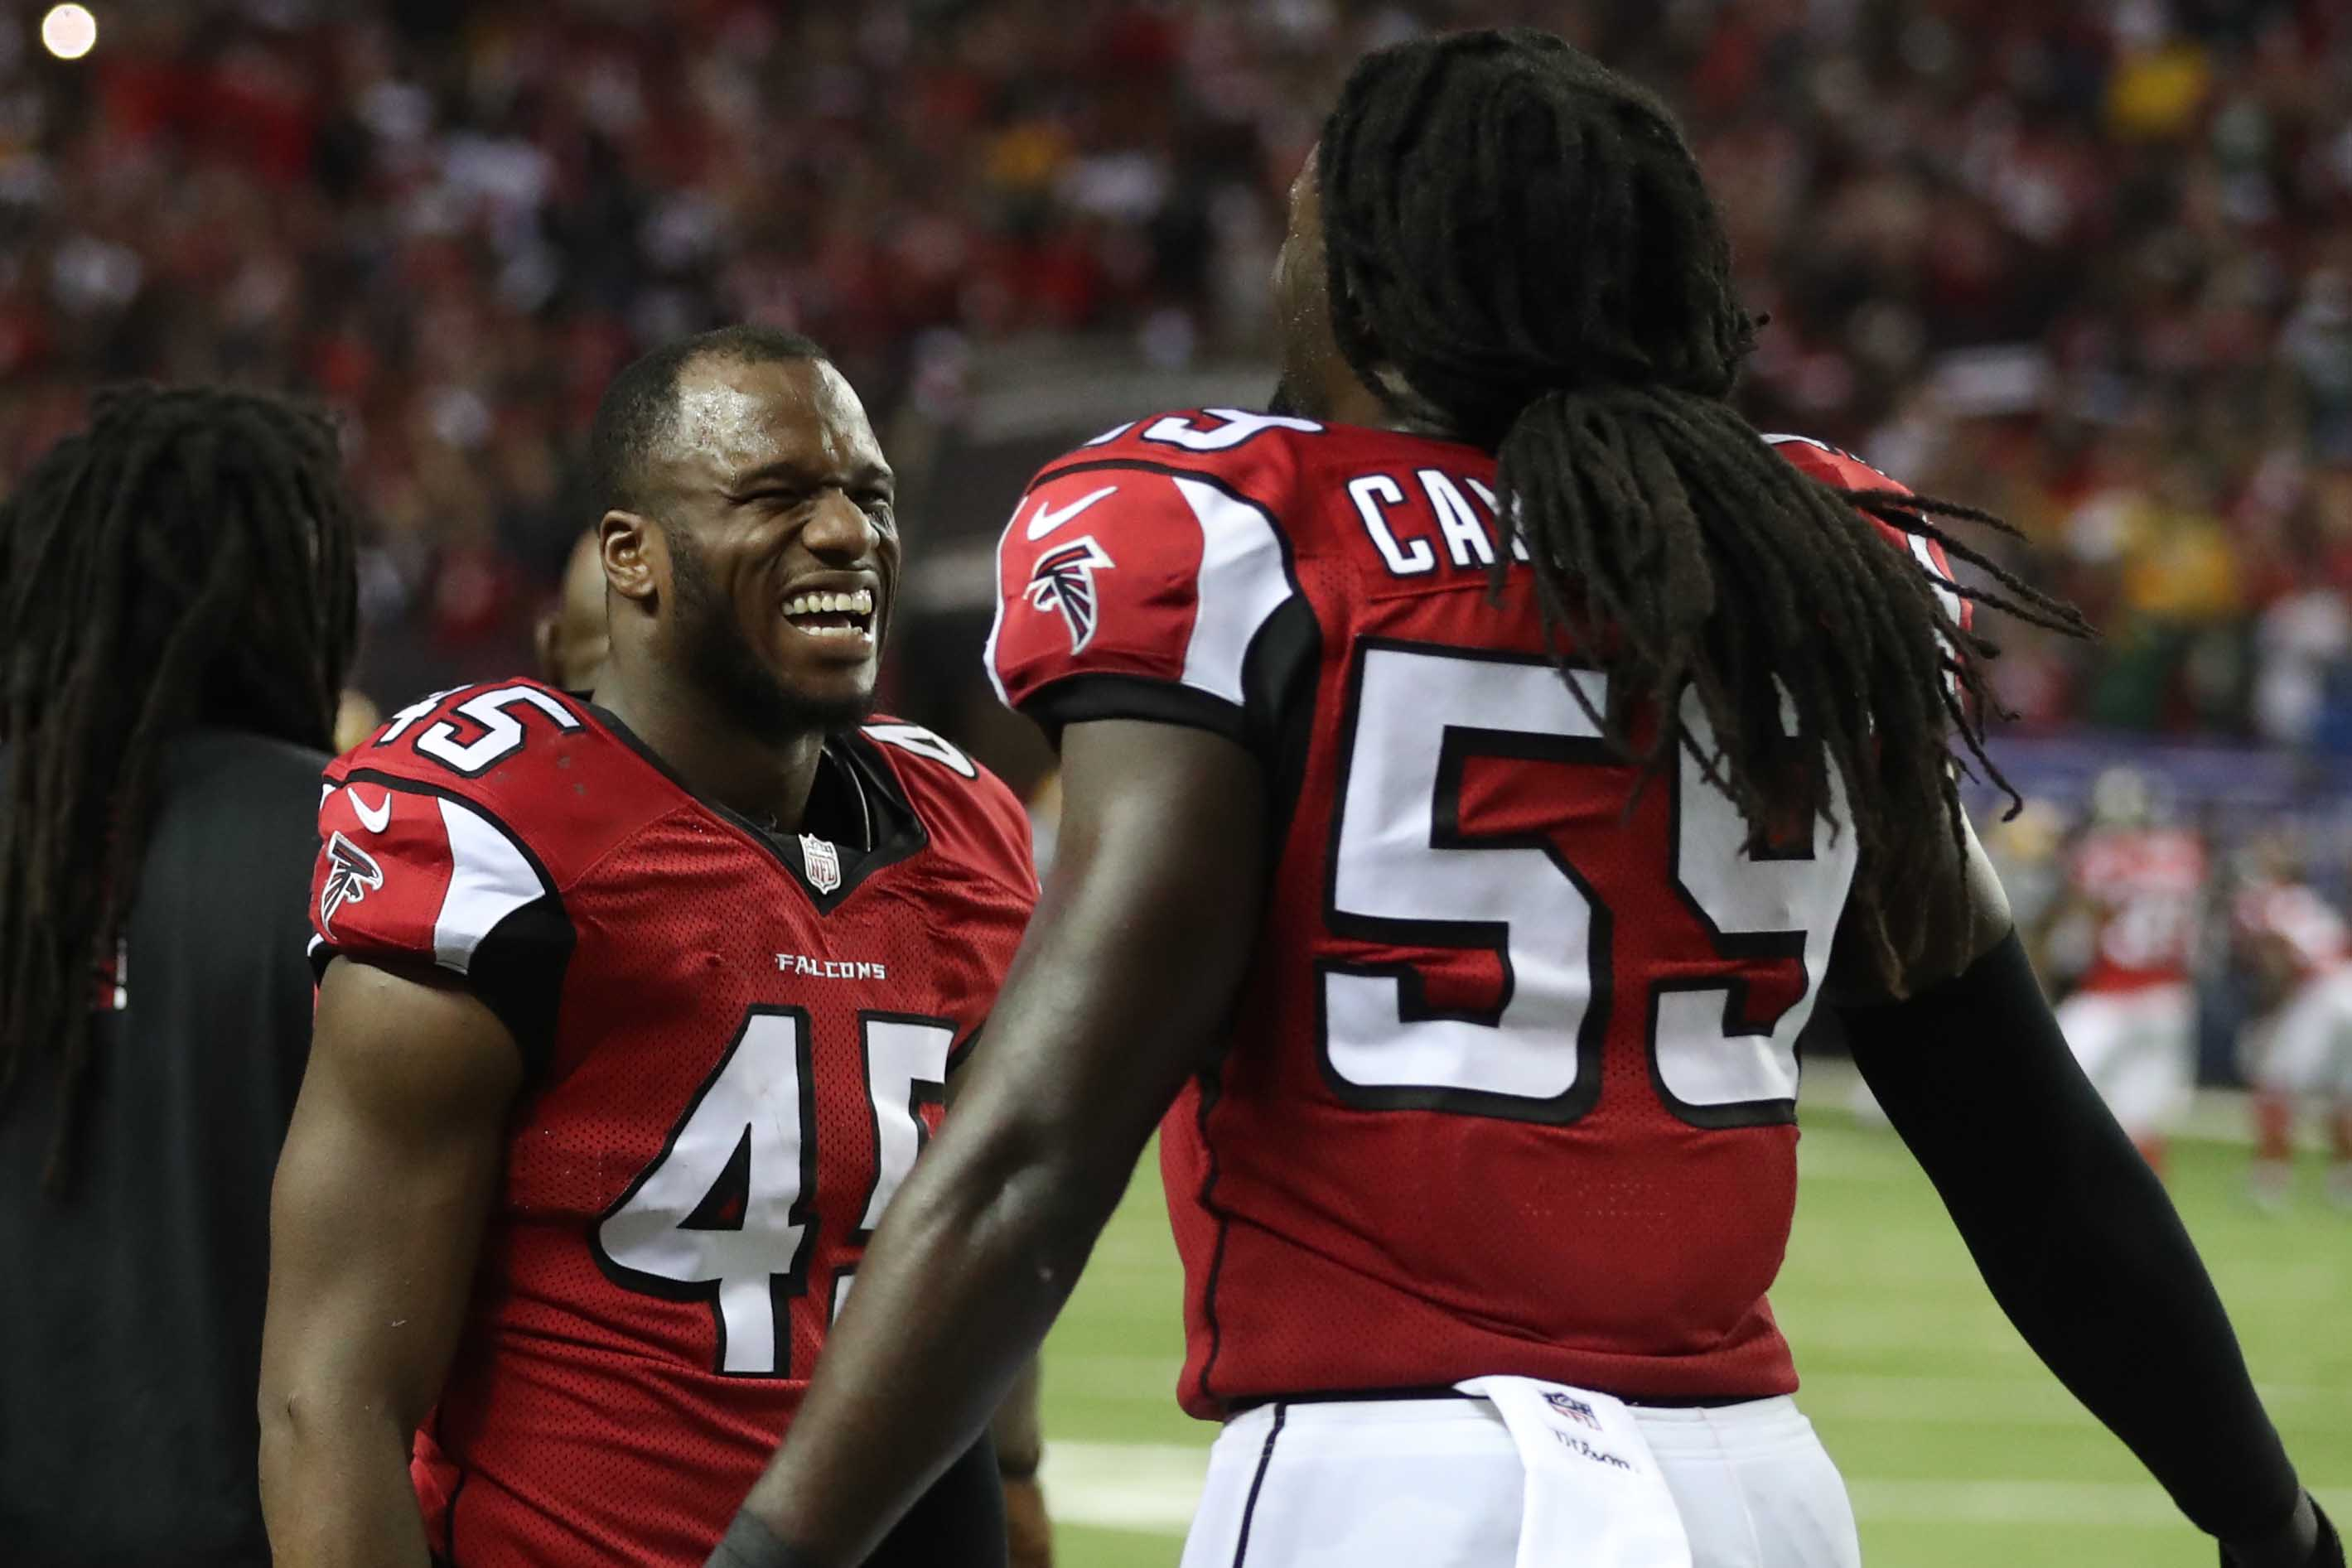 Jan 22, 2017; Atlanta, GA, USA; Atlanta Falcons middle linebacker Deion Jones (45) and outside linebacker De'Vondre Campbell (59) react on the sidelines during the fourth quarter against the Green Bay Packers in the 2017 NFC Championship Game at the Georgia Dome. Atlanta defeated Green Bay 44-21. Mandatory Credit: Jason Getz-USA TODAY Sports